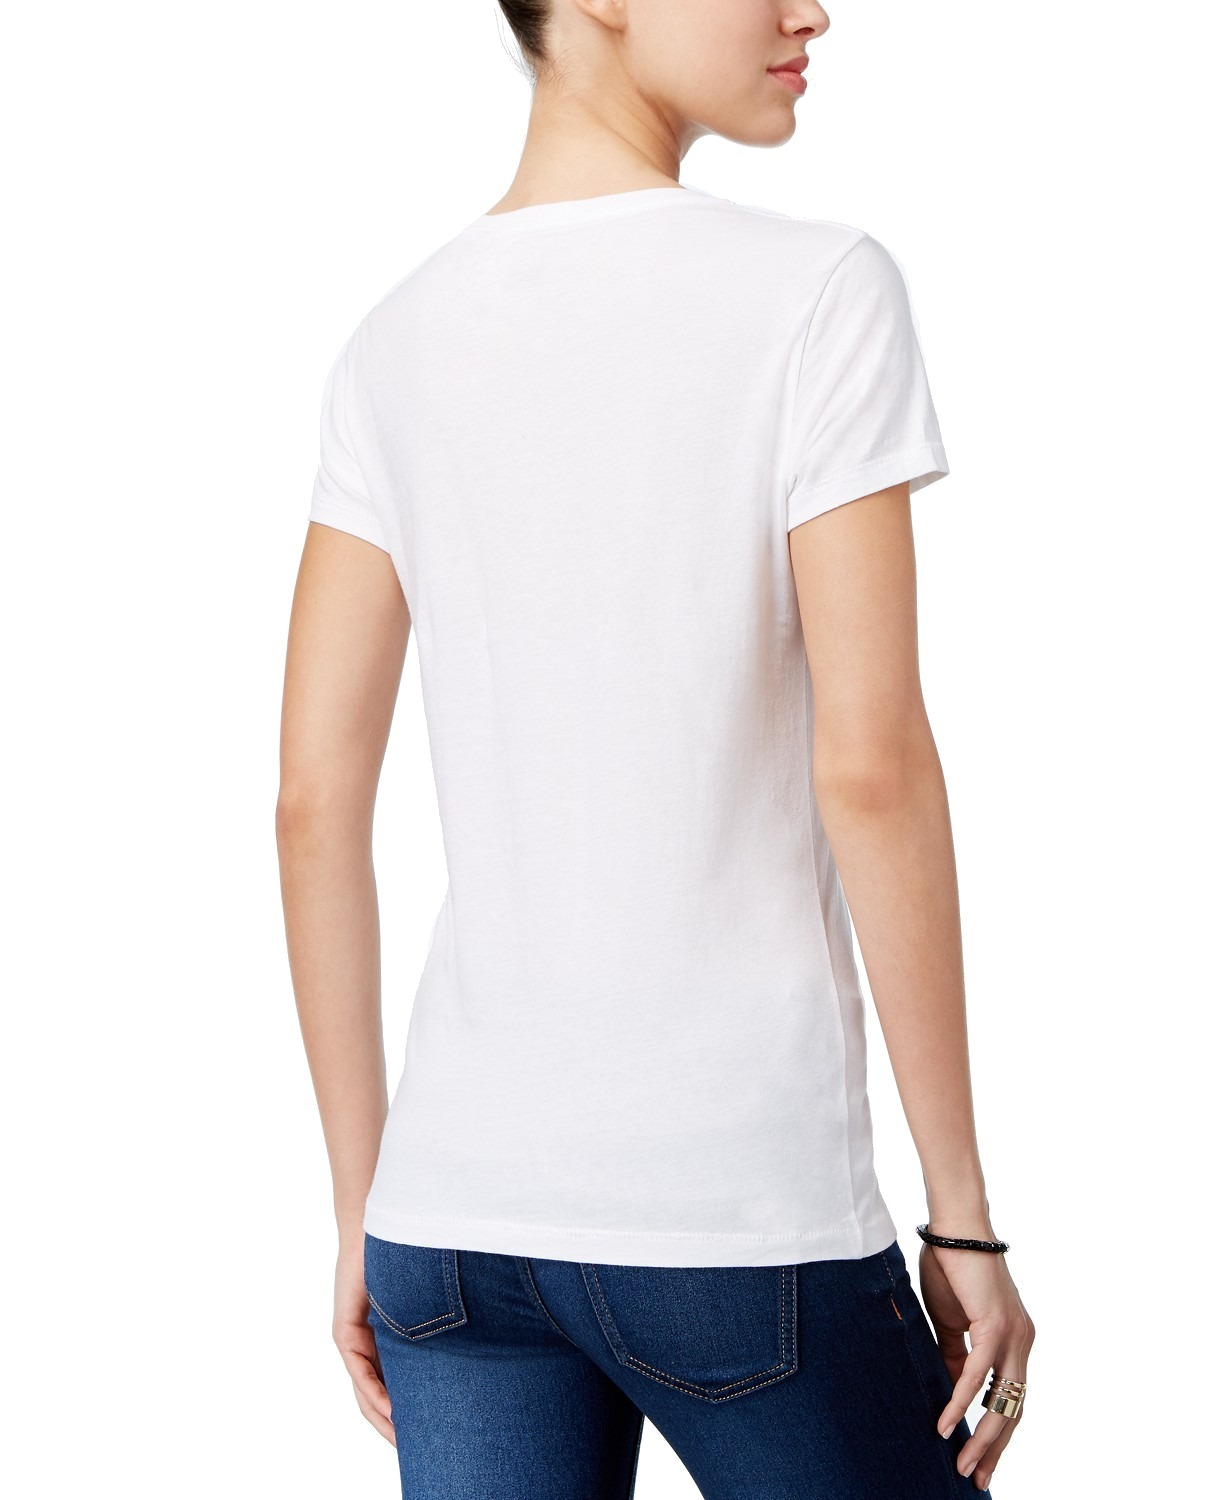 Levi-039-s-NEW-Two-Tone-Women-039-s-Classic-Batwing-Logo-Crewneck-Short-Sleeve-T-Shirt thumbnail 12